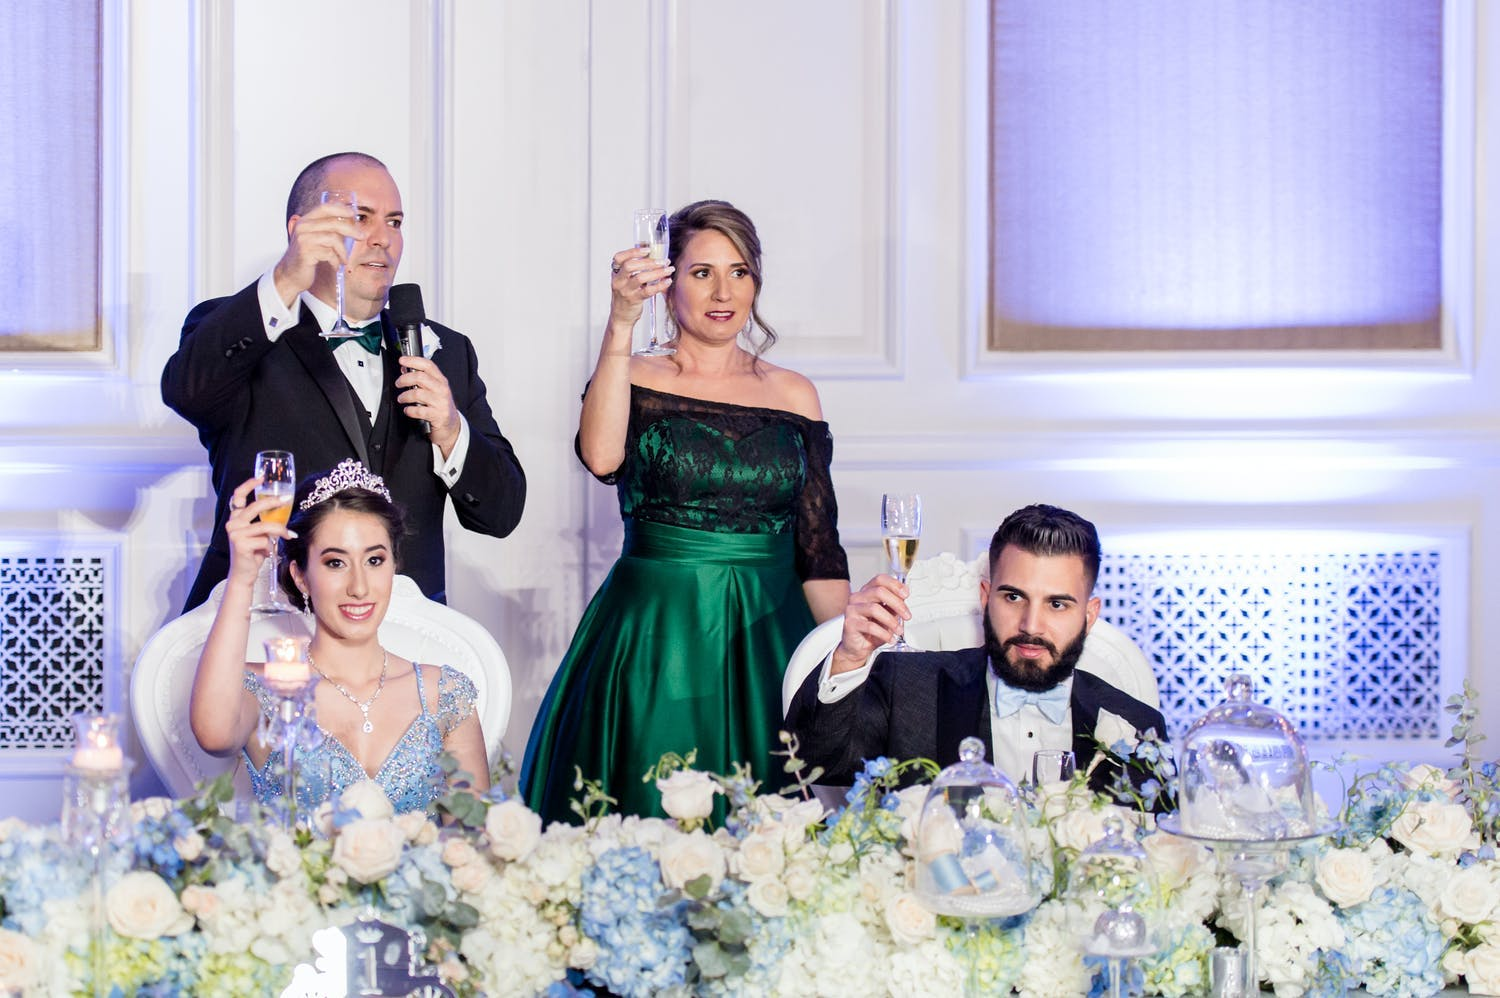 Parents and chambelan escort raise a toast, one of many common quinceañera traditions, for celebrant at fairytale reception | PartySlate